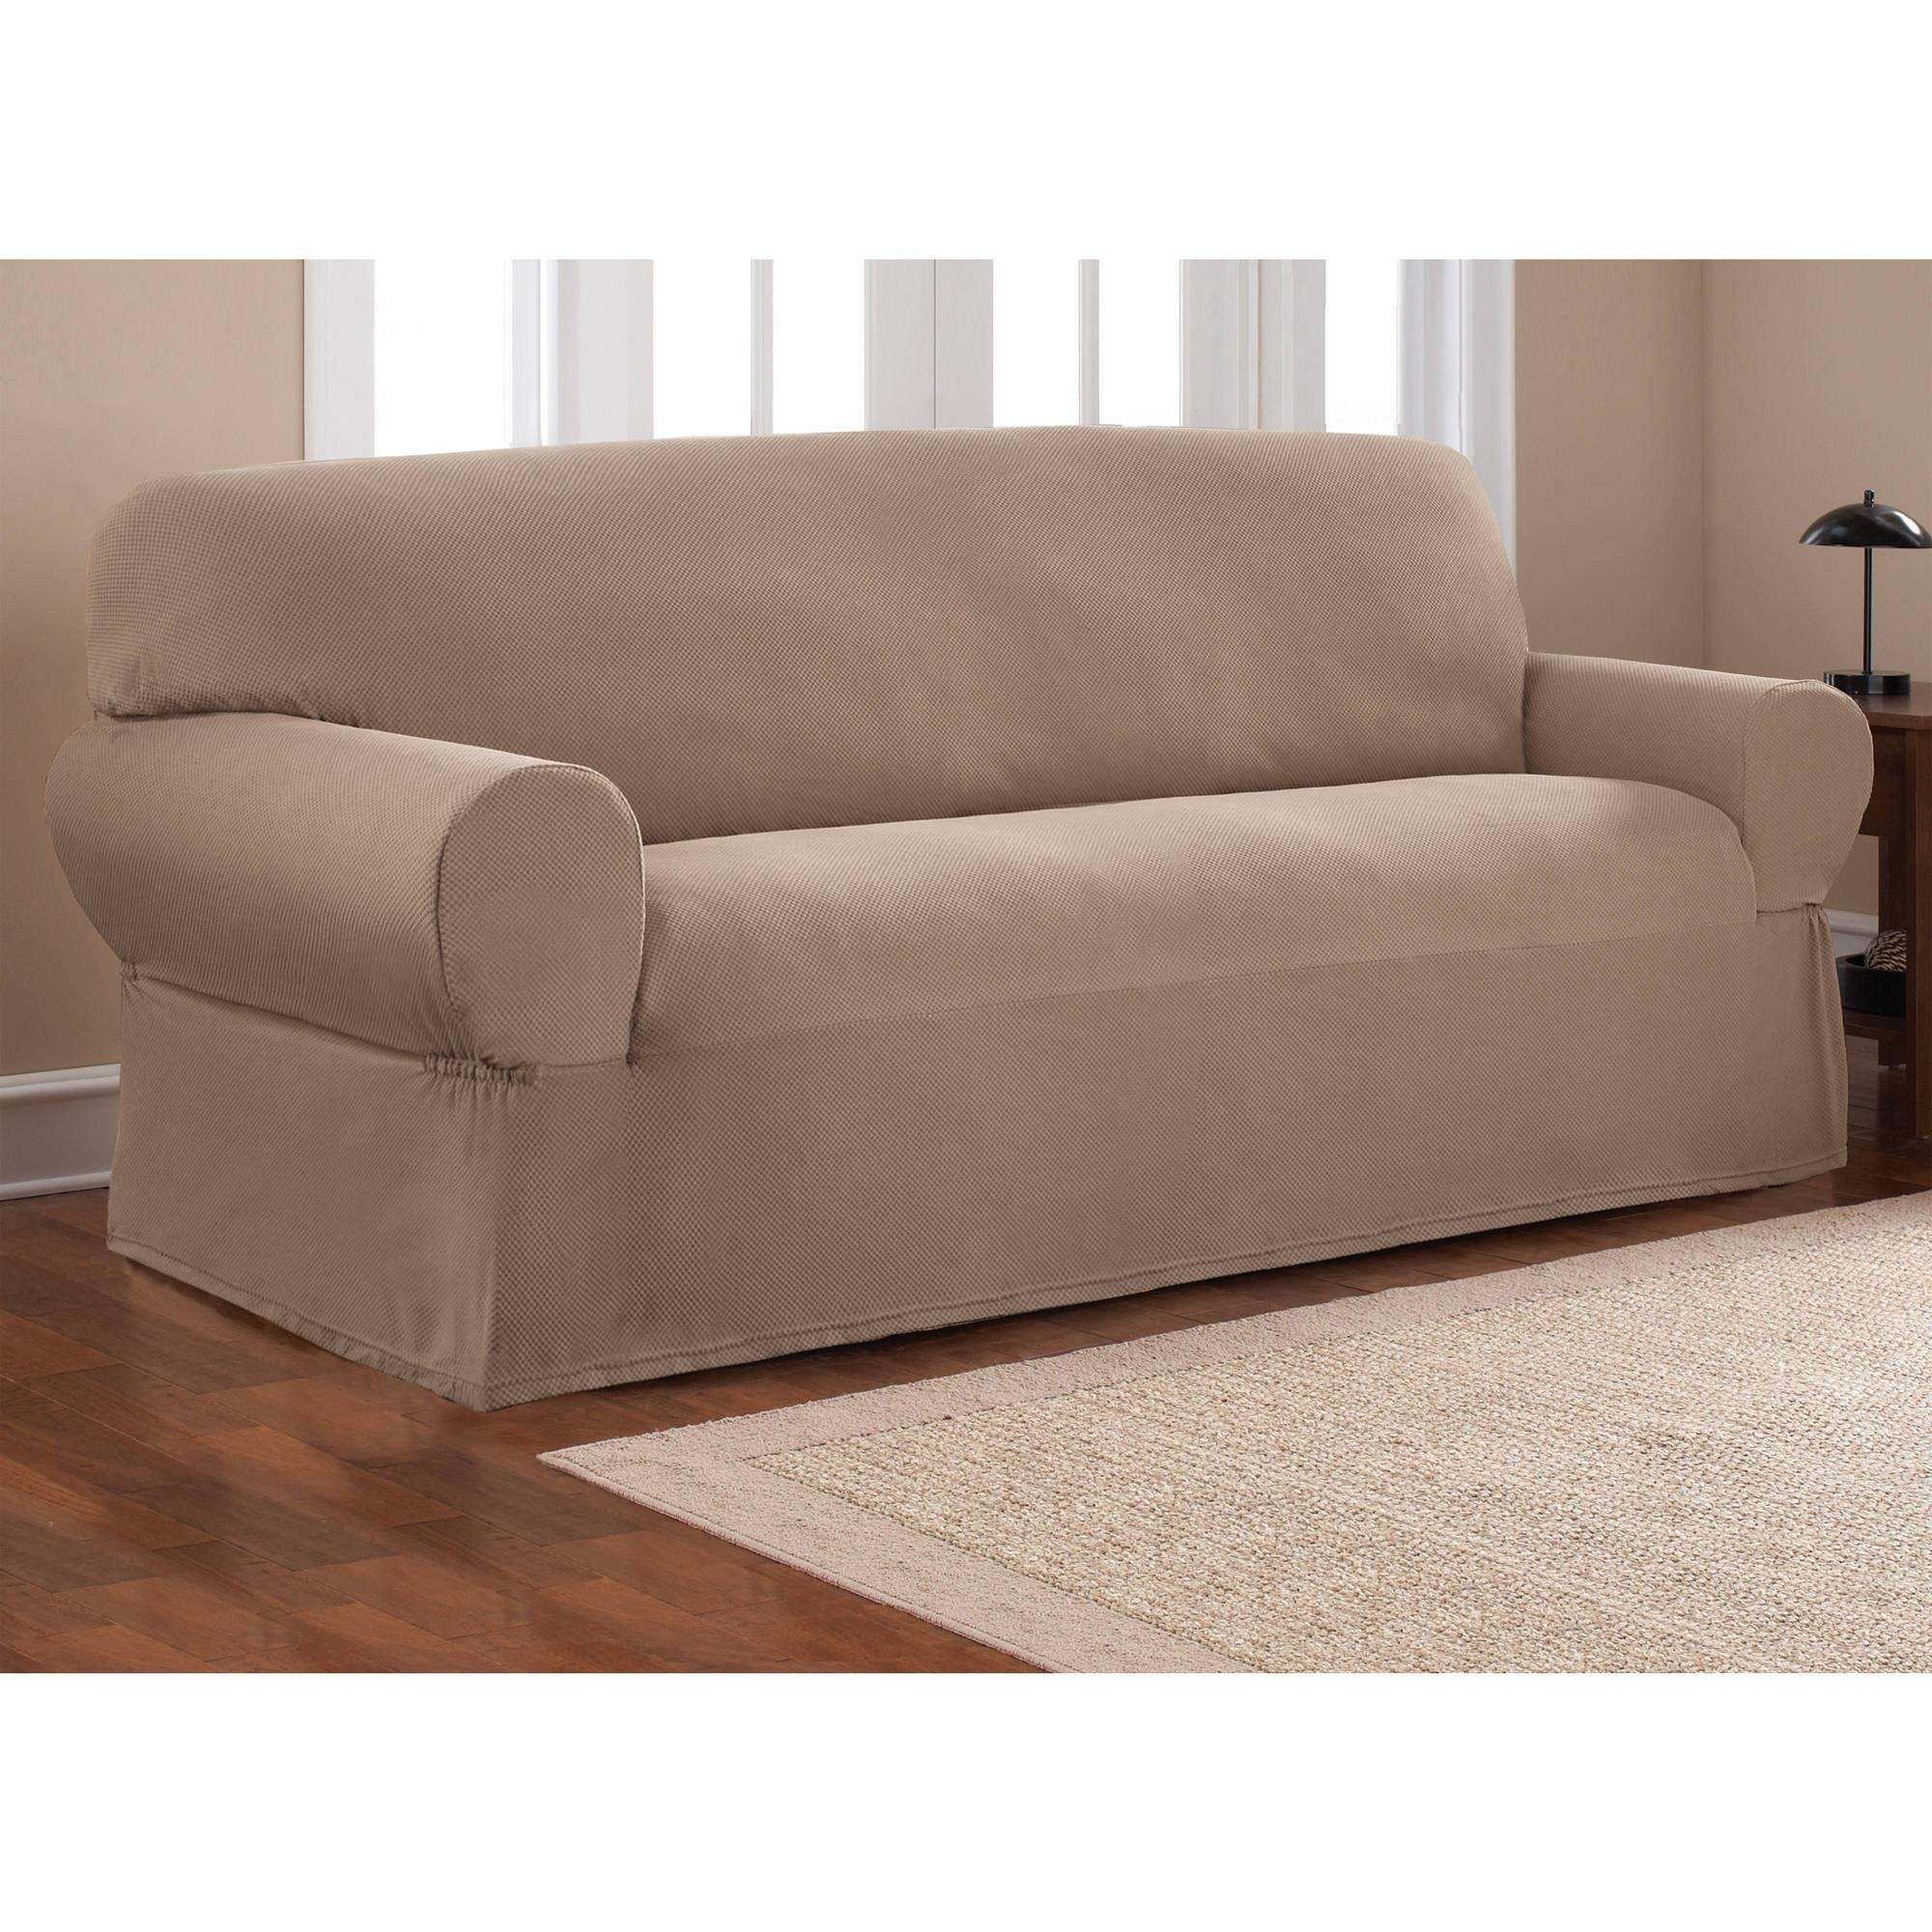 Furniture: Wonderful Walmart Couch Covers Design For Alluring Throughout 3 Piece Sectional Sofa Slipcovers (View 9 of 20)